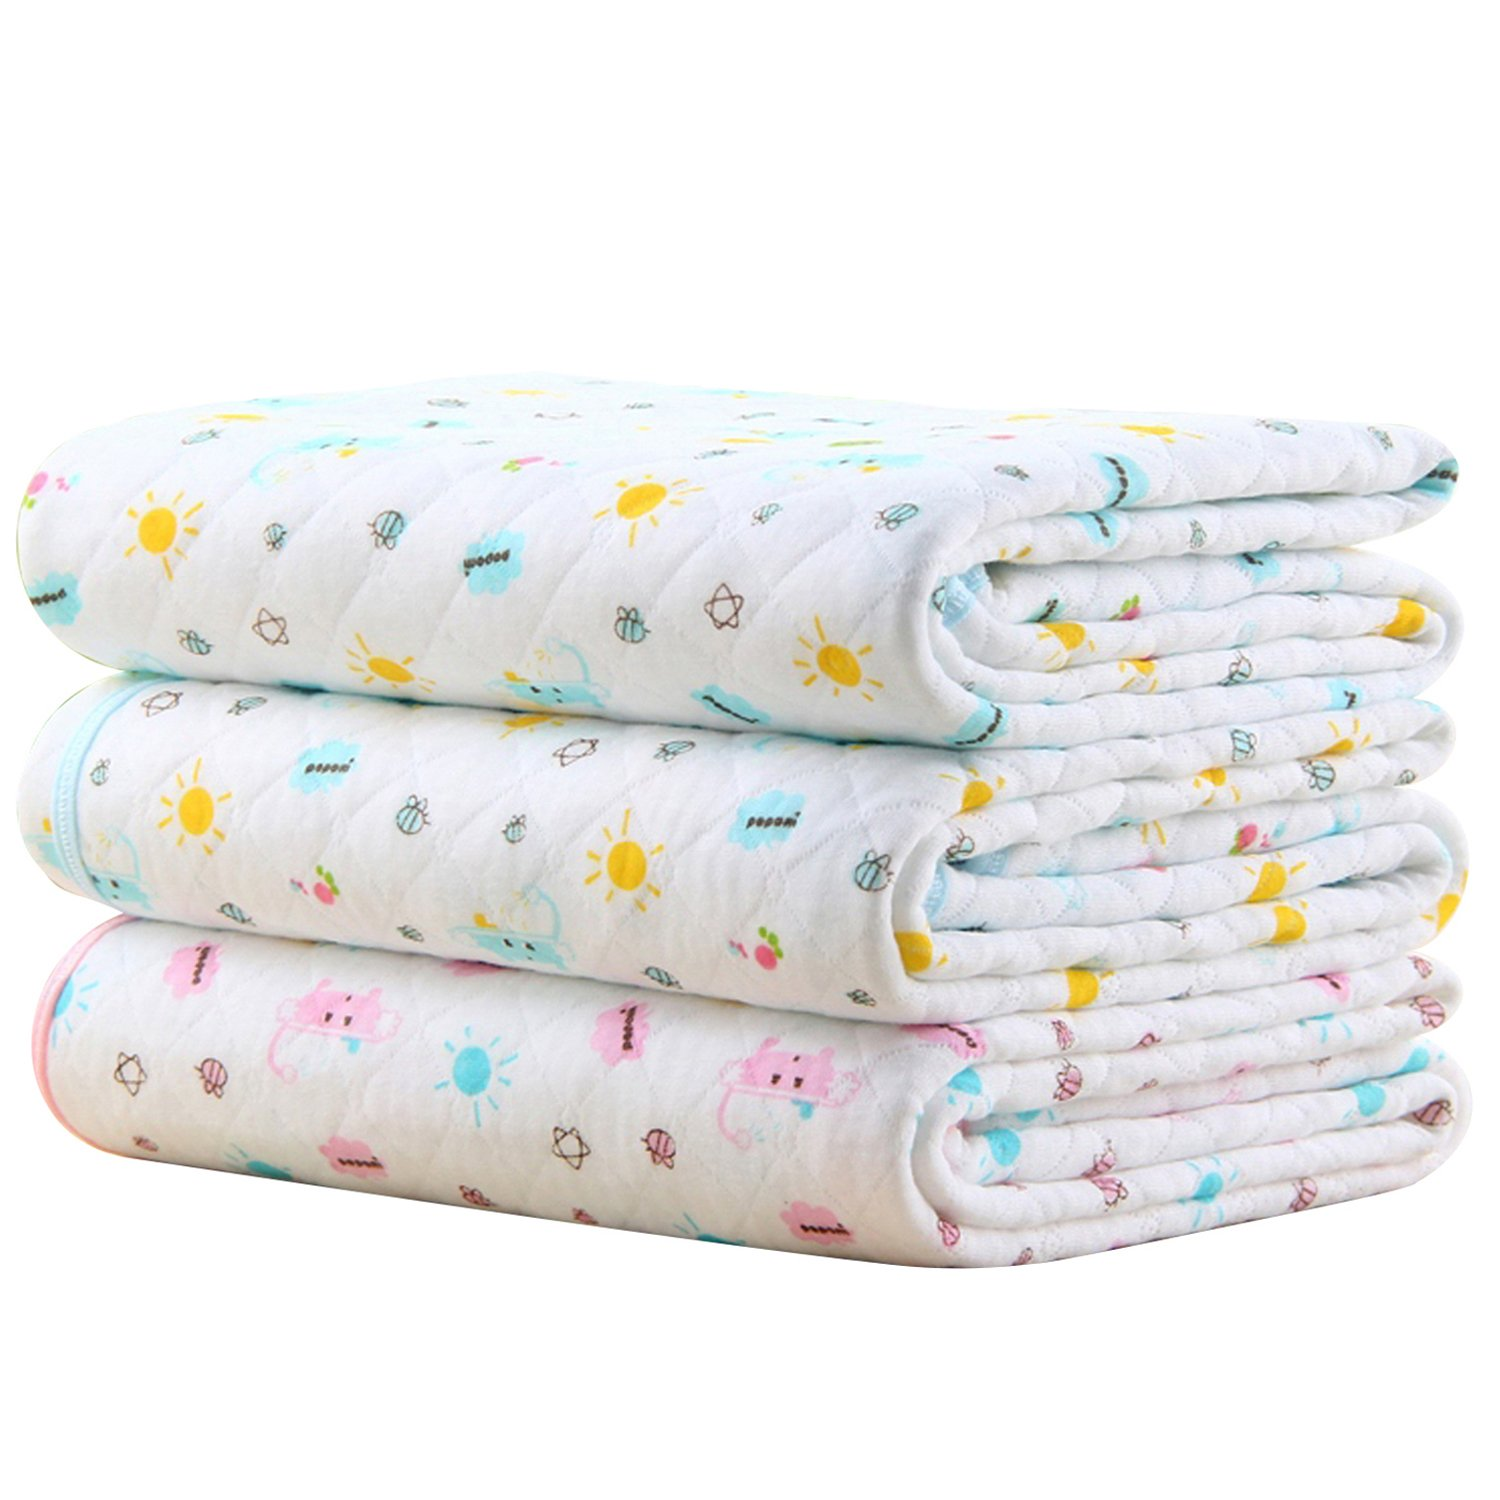 Baby Kid Mattress Waterproof Changing Pad Diapering Sheet Protector Menstrual Pads Pack of 3 (M (27.5x19.7inch))